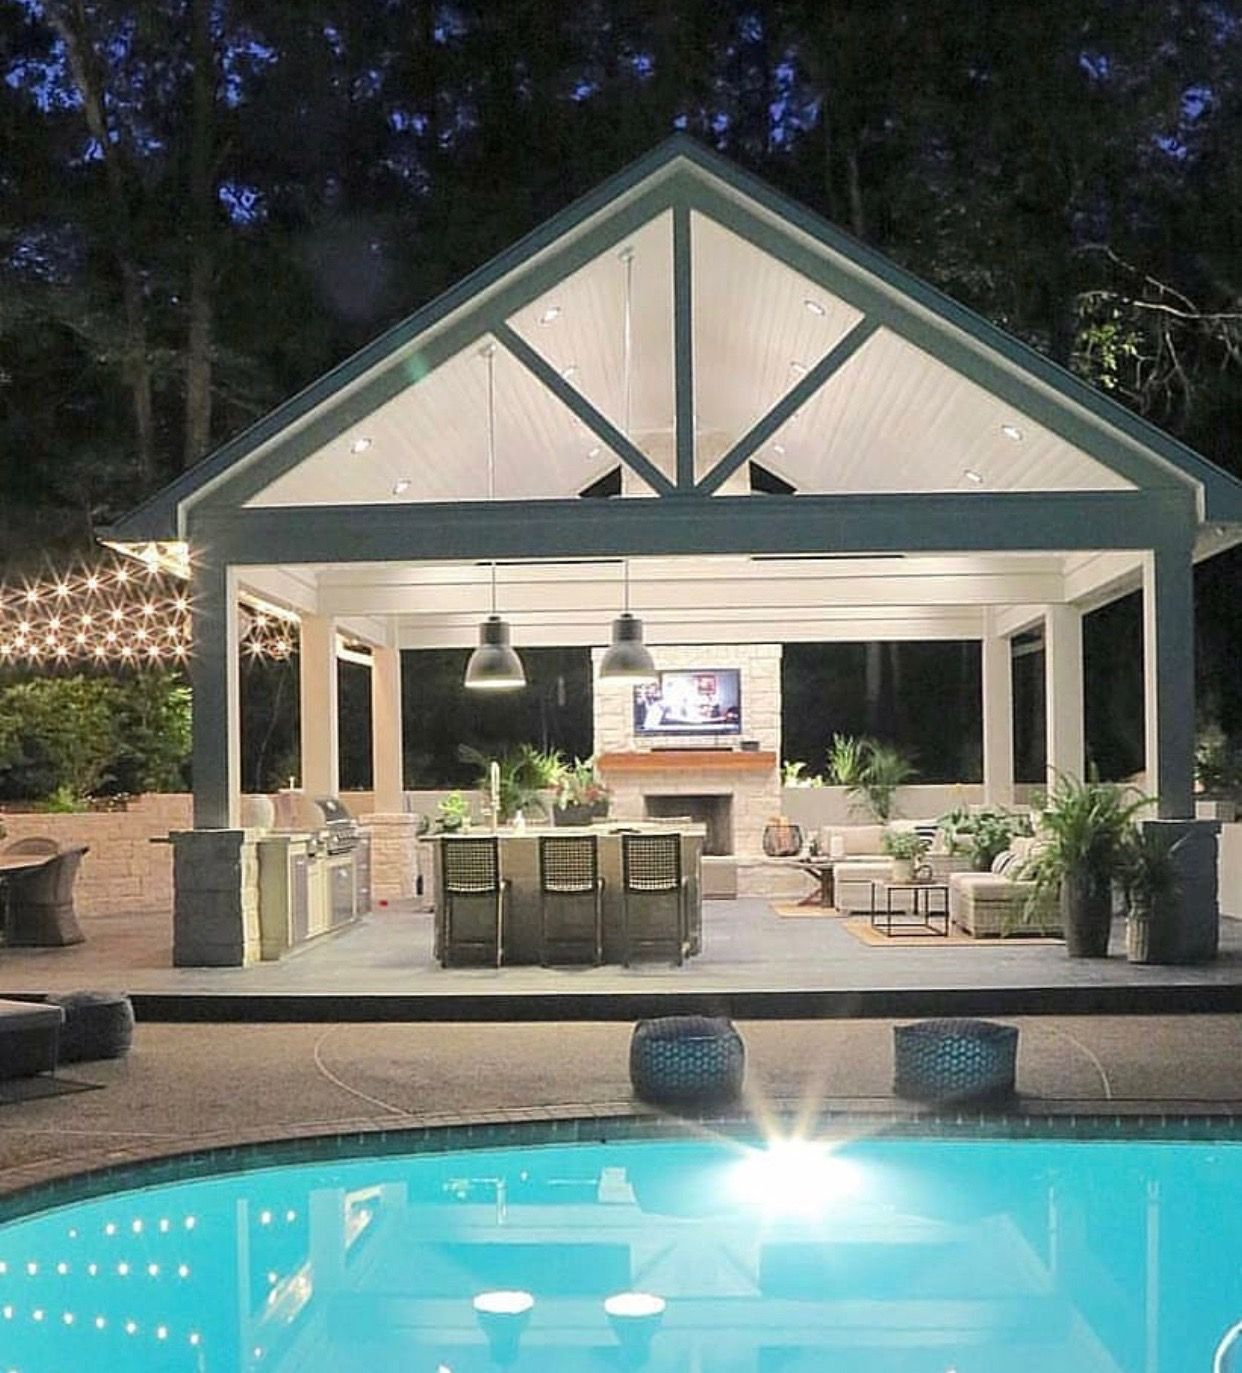 Carriage Crossing Pool House Inspiration In 2019 Outdoor pertaining to 13 Clever Designs of How to Make Backyard Pool House Ideas